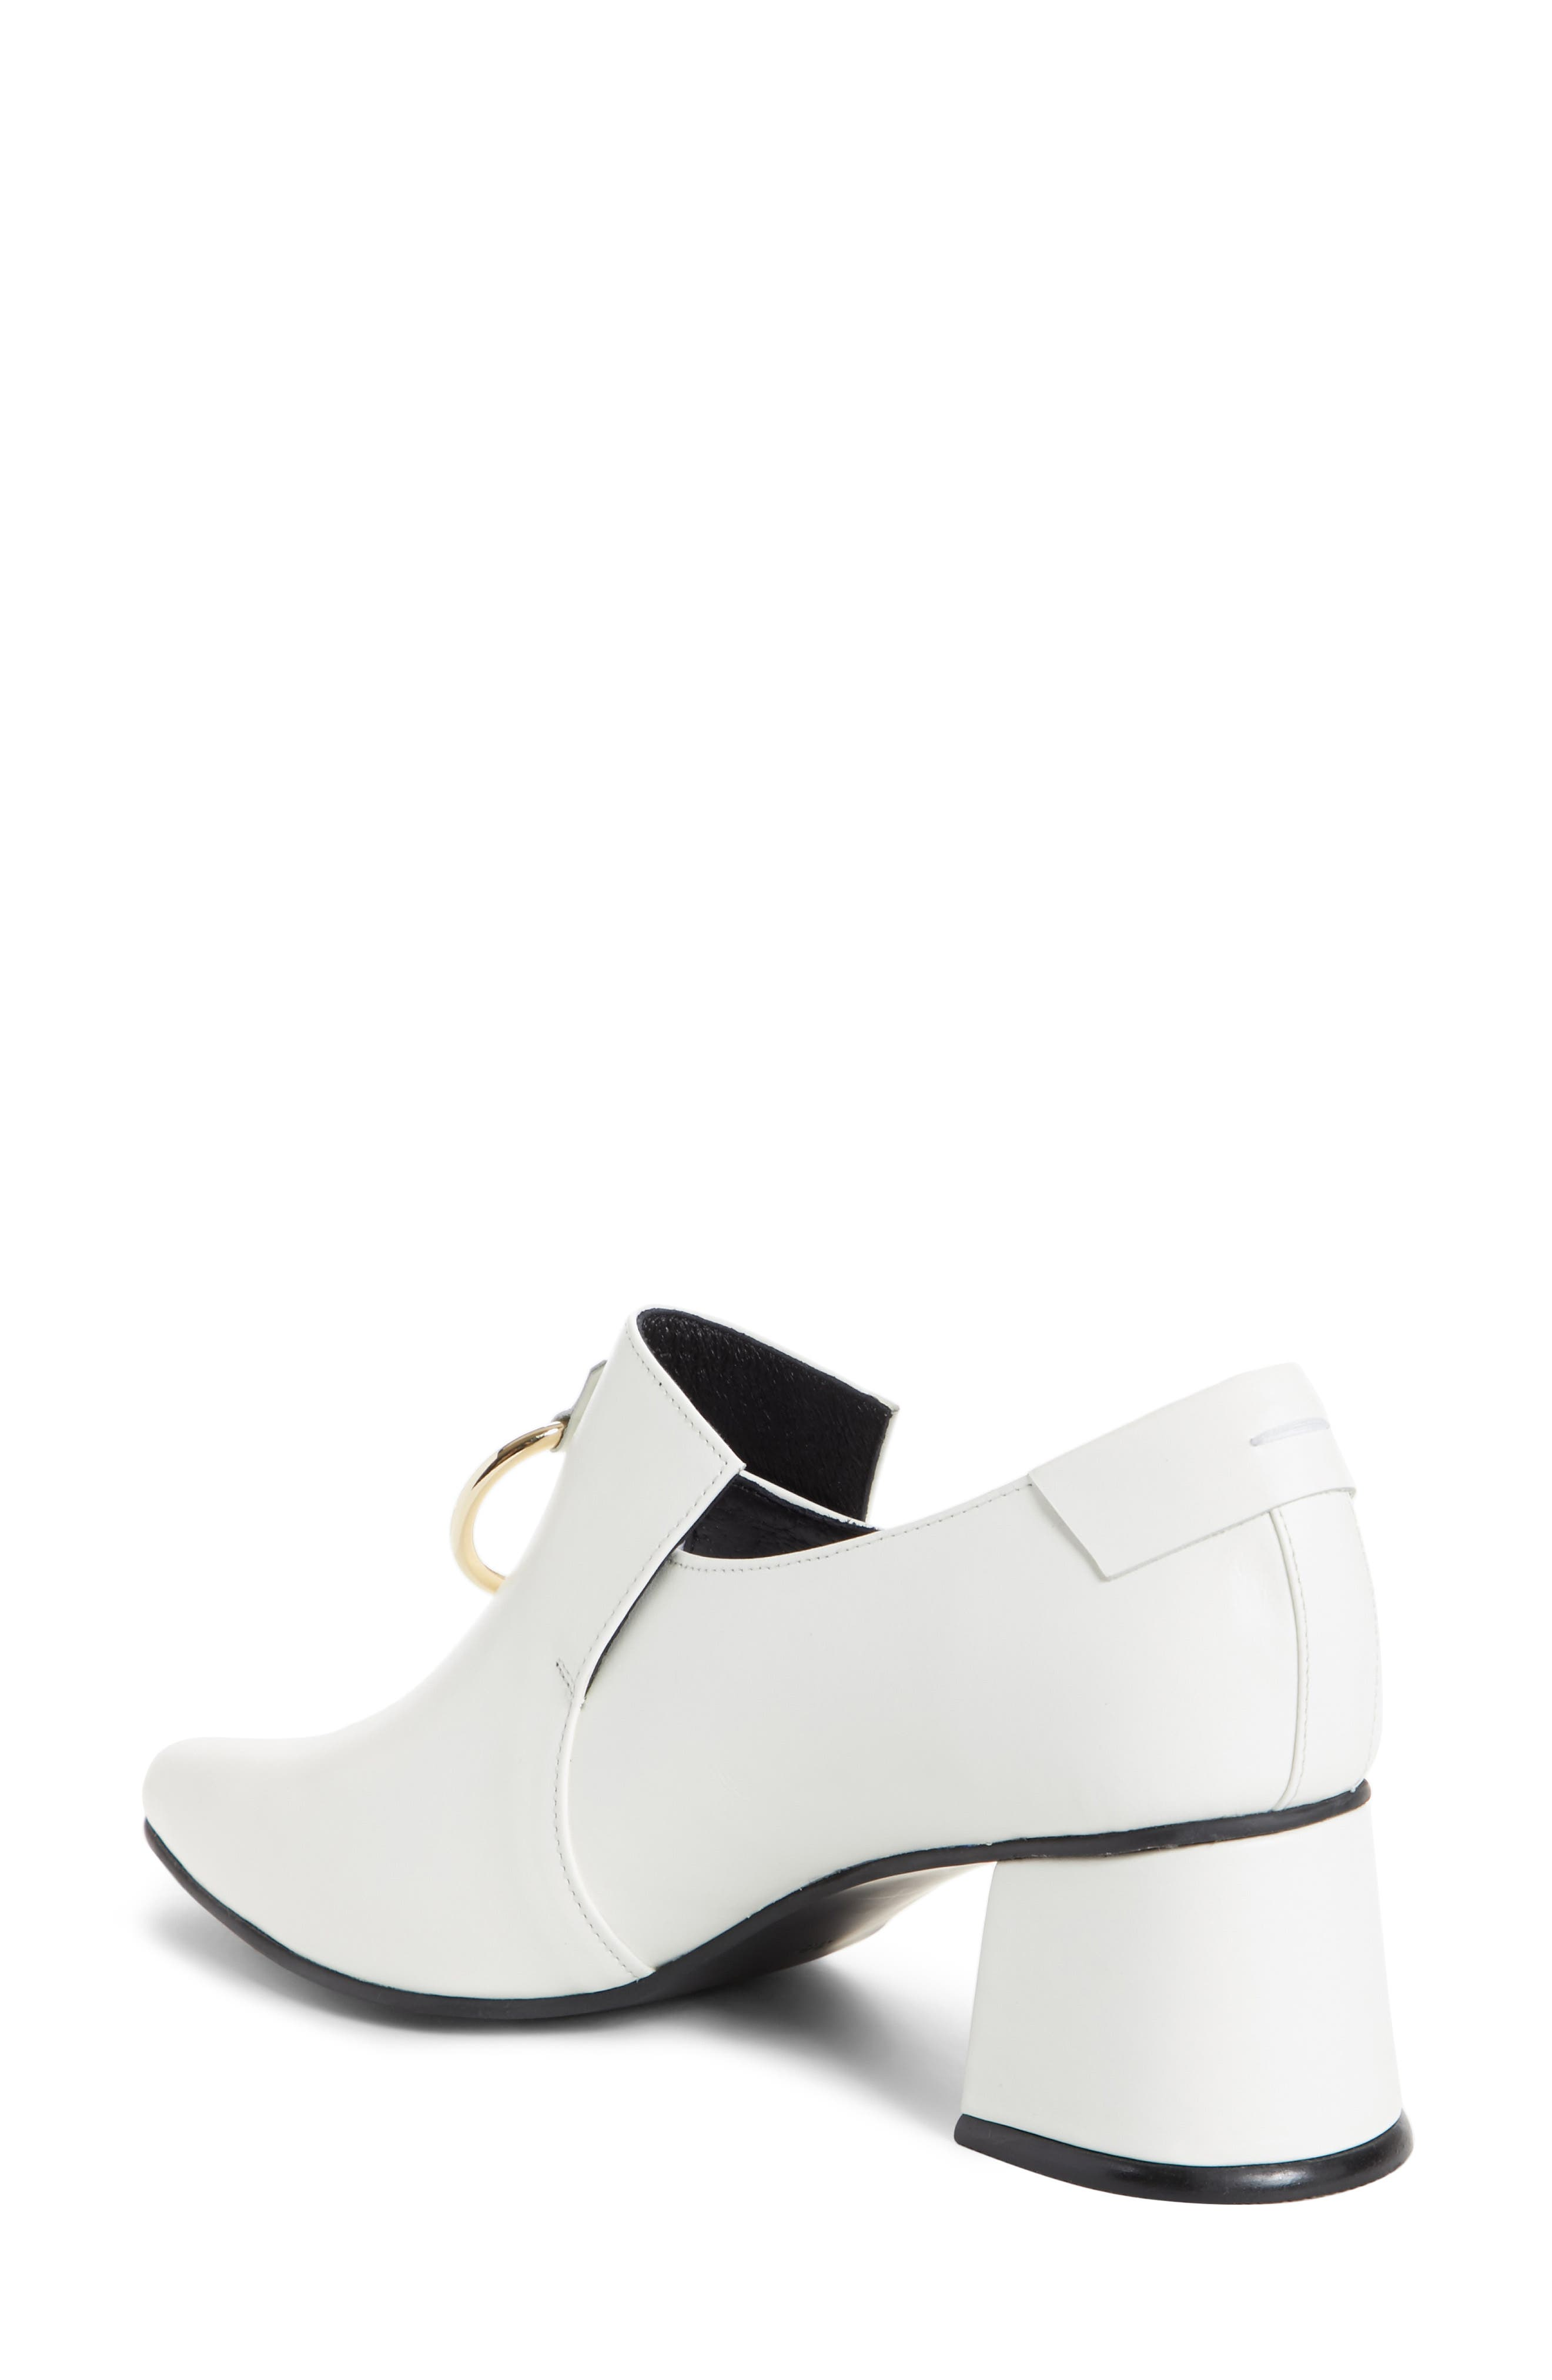 Ring Middle Loafer Pump,                             Alternate thumbnail 2, color,                             White